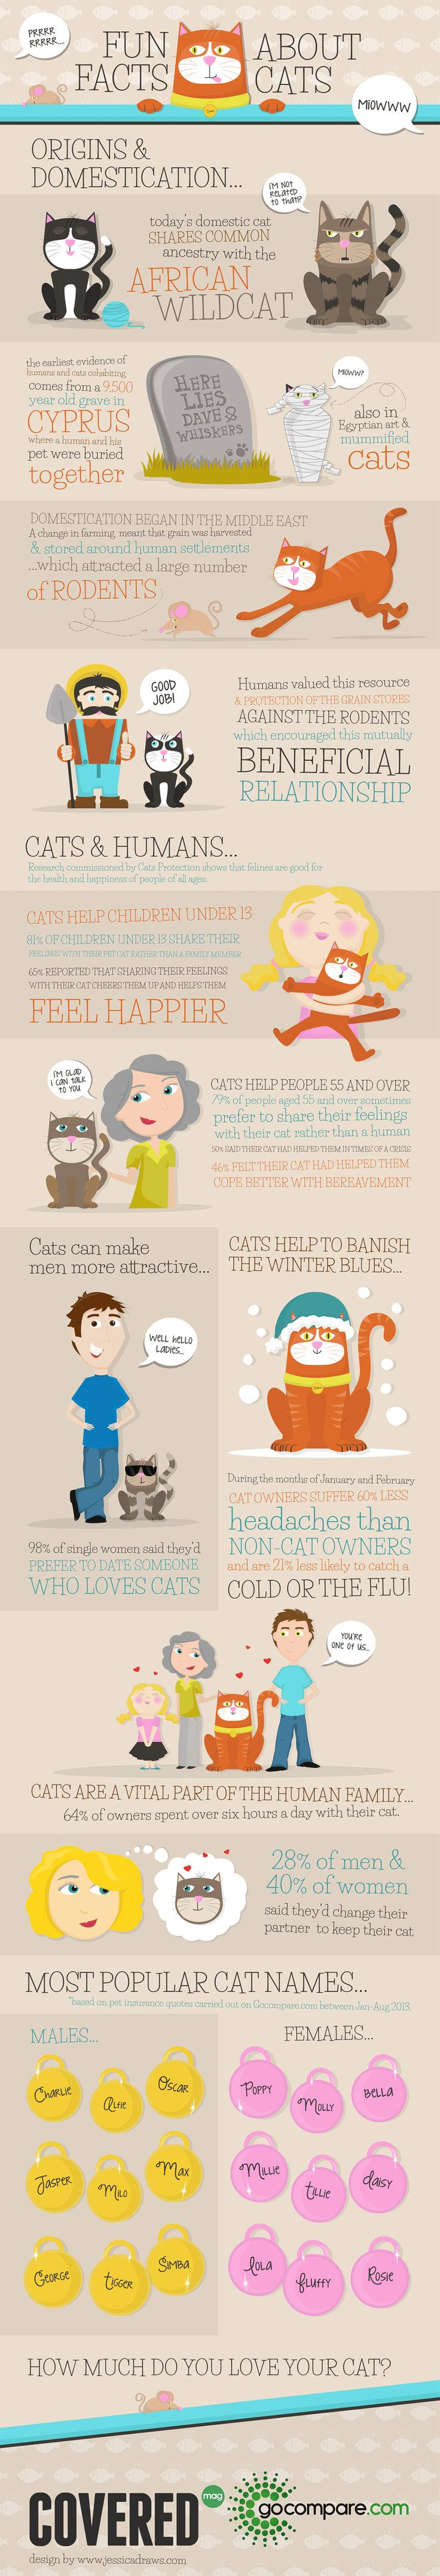 This infographic contains many fun facts about cats, including favorite names (some were a surprise), and benefits cats provide to people of all ages (we already knew how great felines are for us, no surprise there!). Check it out below: